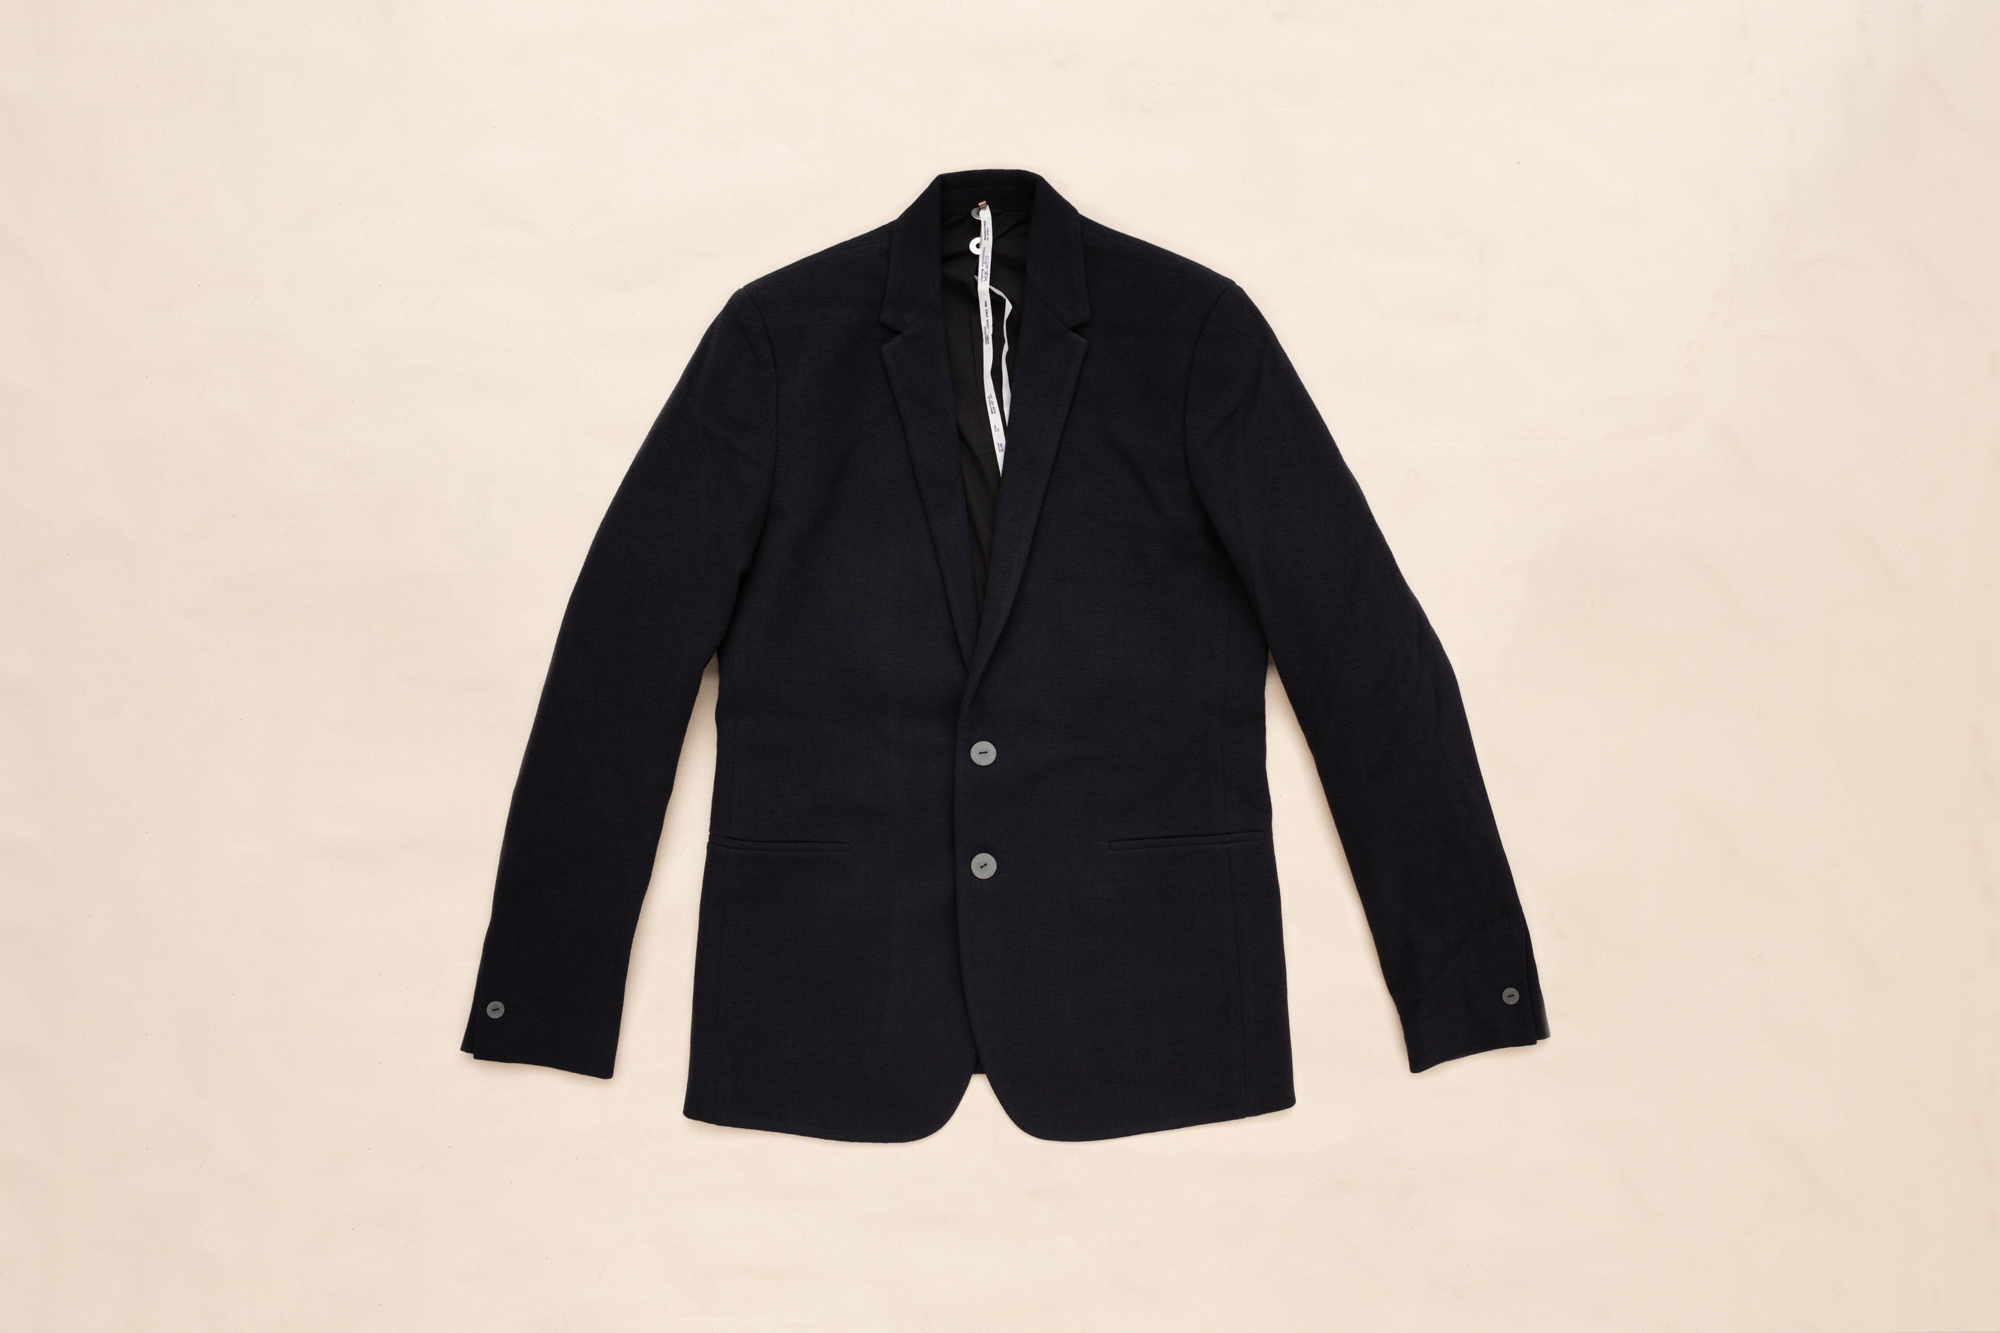 SLIM FIT JACKET BY LUCA LAURINI